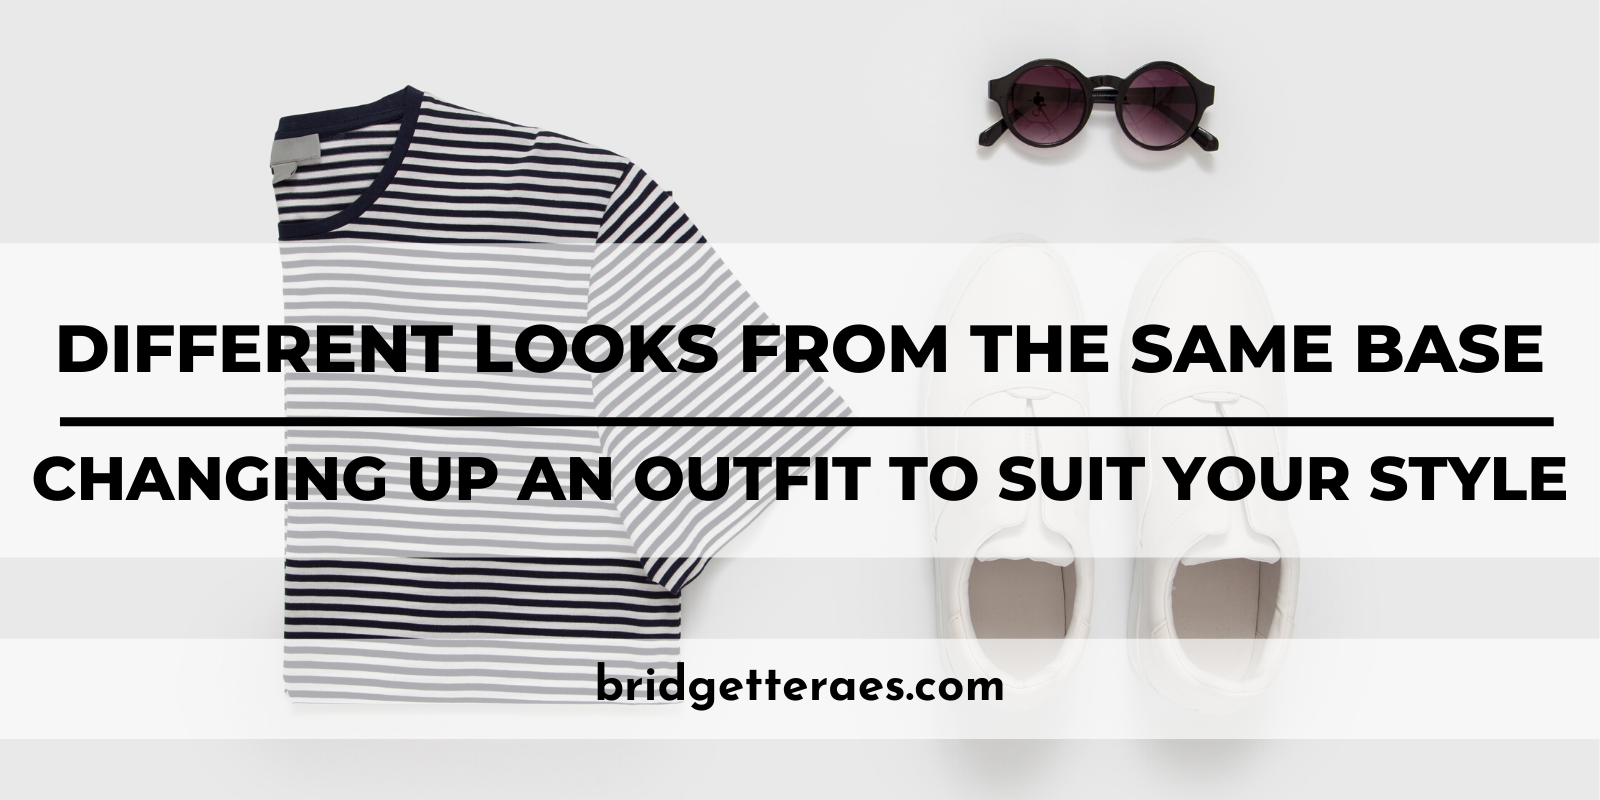 Different Looks from the Same Base: Changing up an Outfit to Suit Your Style